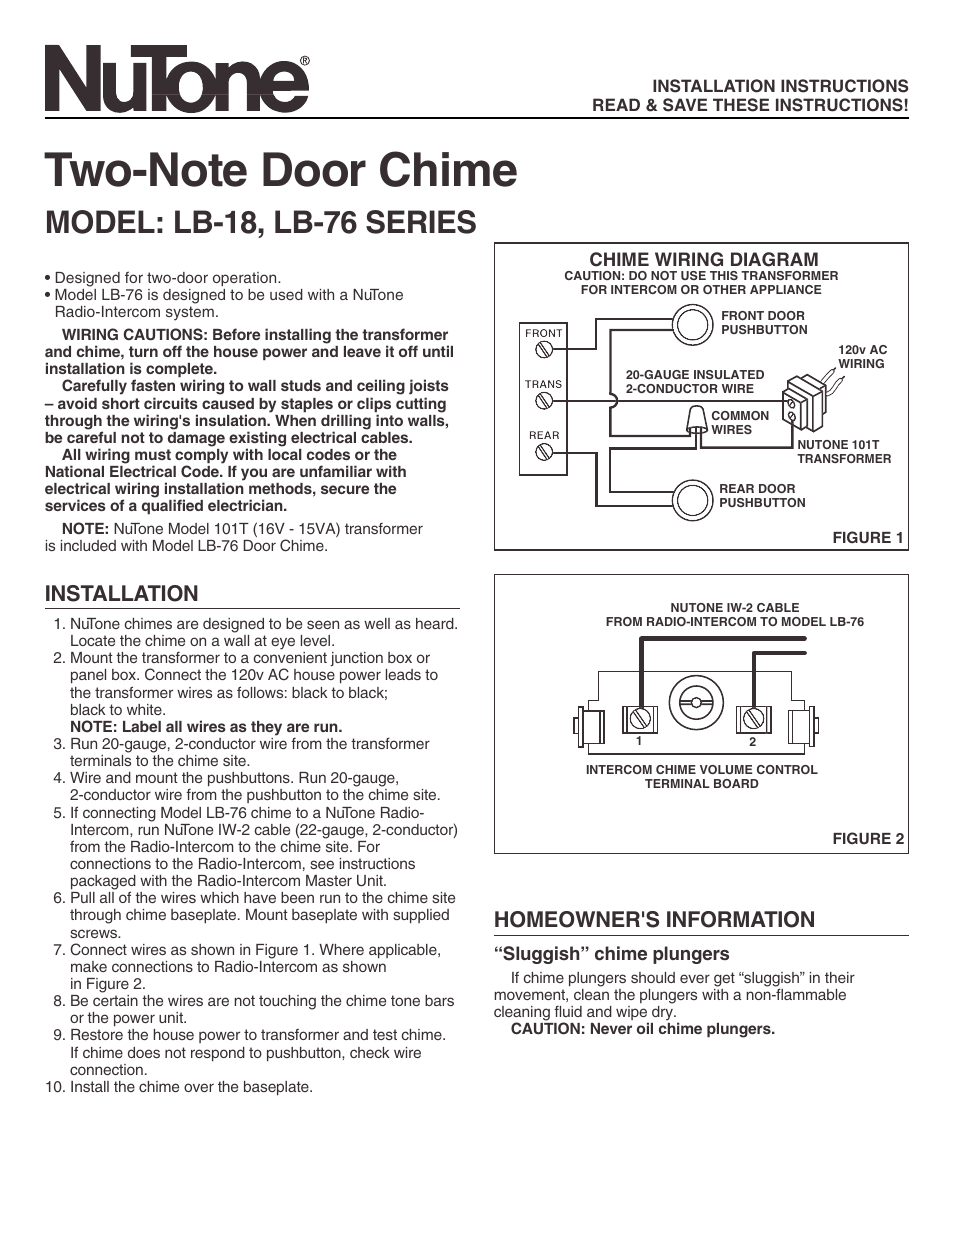 nutone two note door chime lb 76 page1?resize\\\\\\\\\\\\\\\\\\\\\\\\\\\\\\\=665%2C861 friedland type 4 nom ance wiring diagram friedland d107 wiring  at reclaimingppi.co